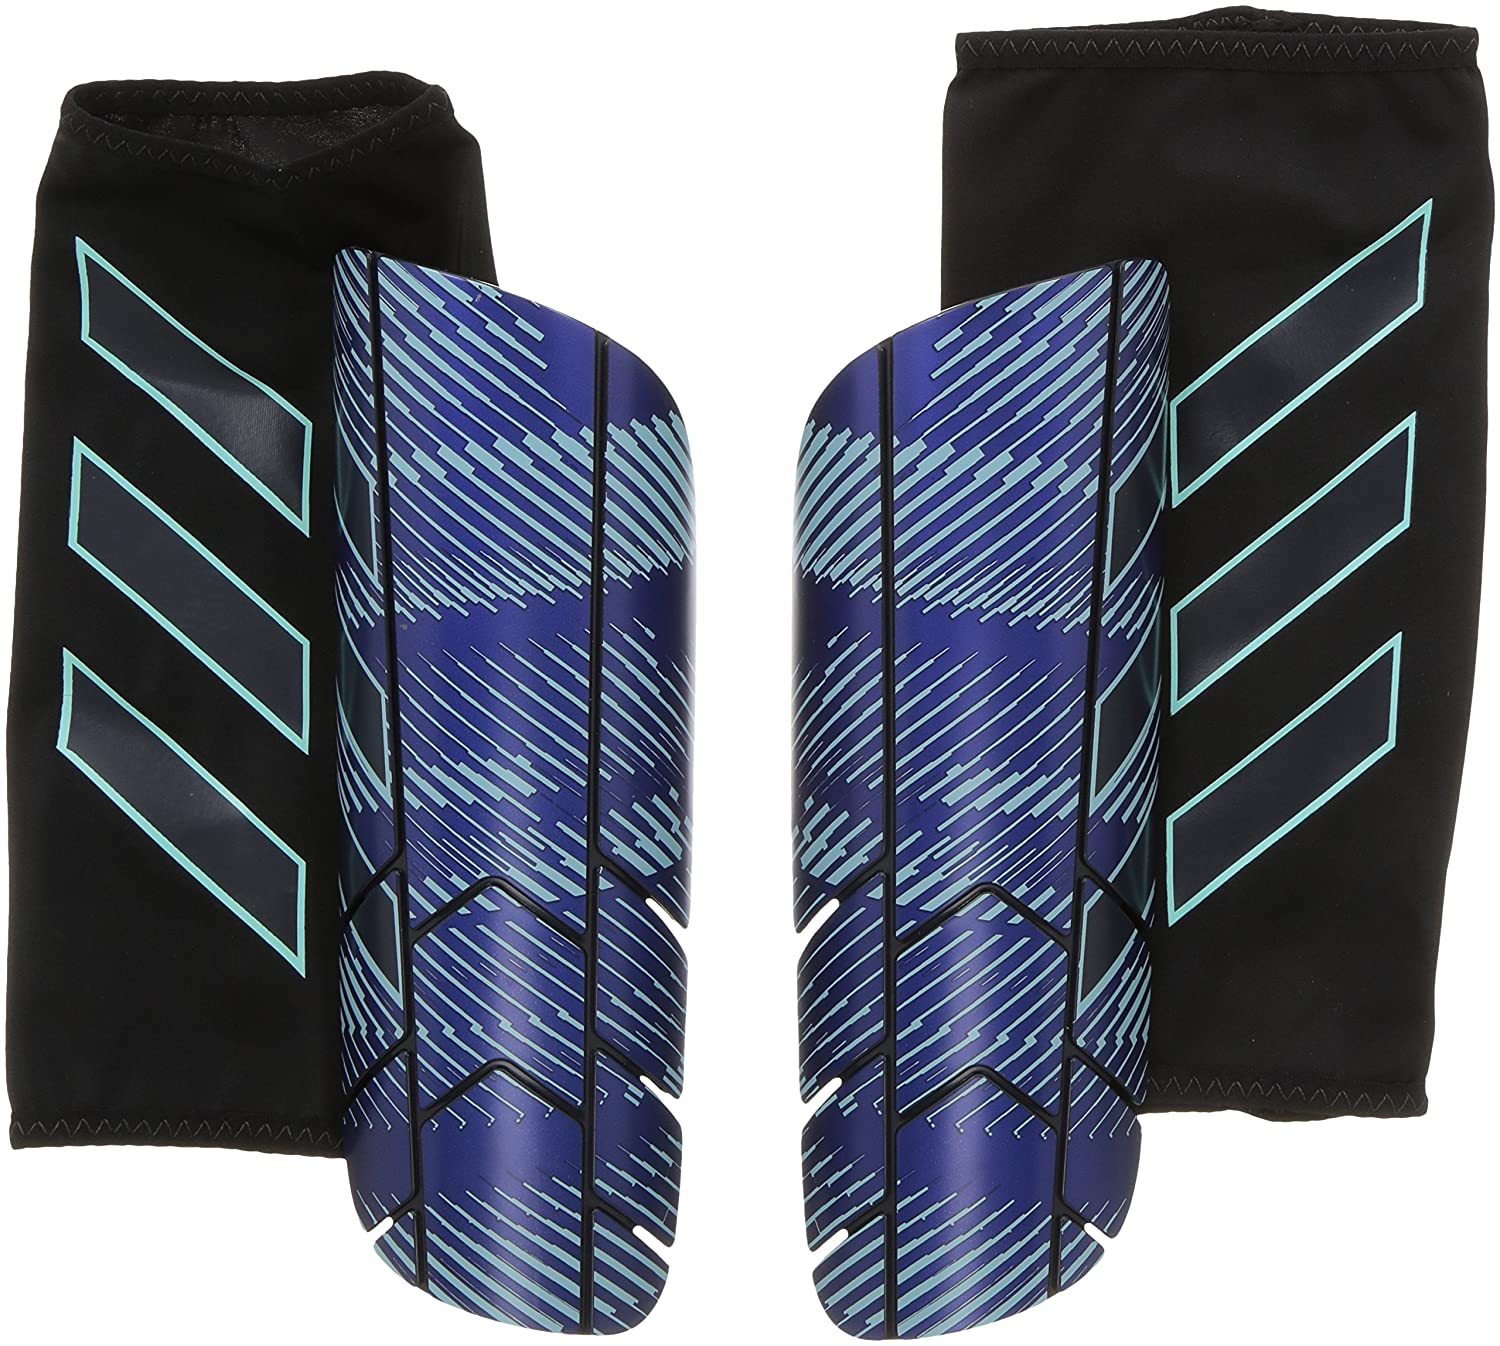 AdidasパフォーマンスGhost Pro Shin Guard B01MYY7EUF Medium|Legend Ink/Mystery Ink/Energy Aqua Legend Ink/Mystery Ink/Energy Aqua Medium